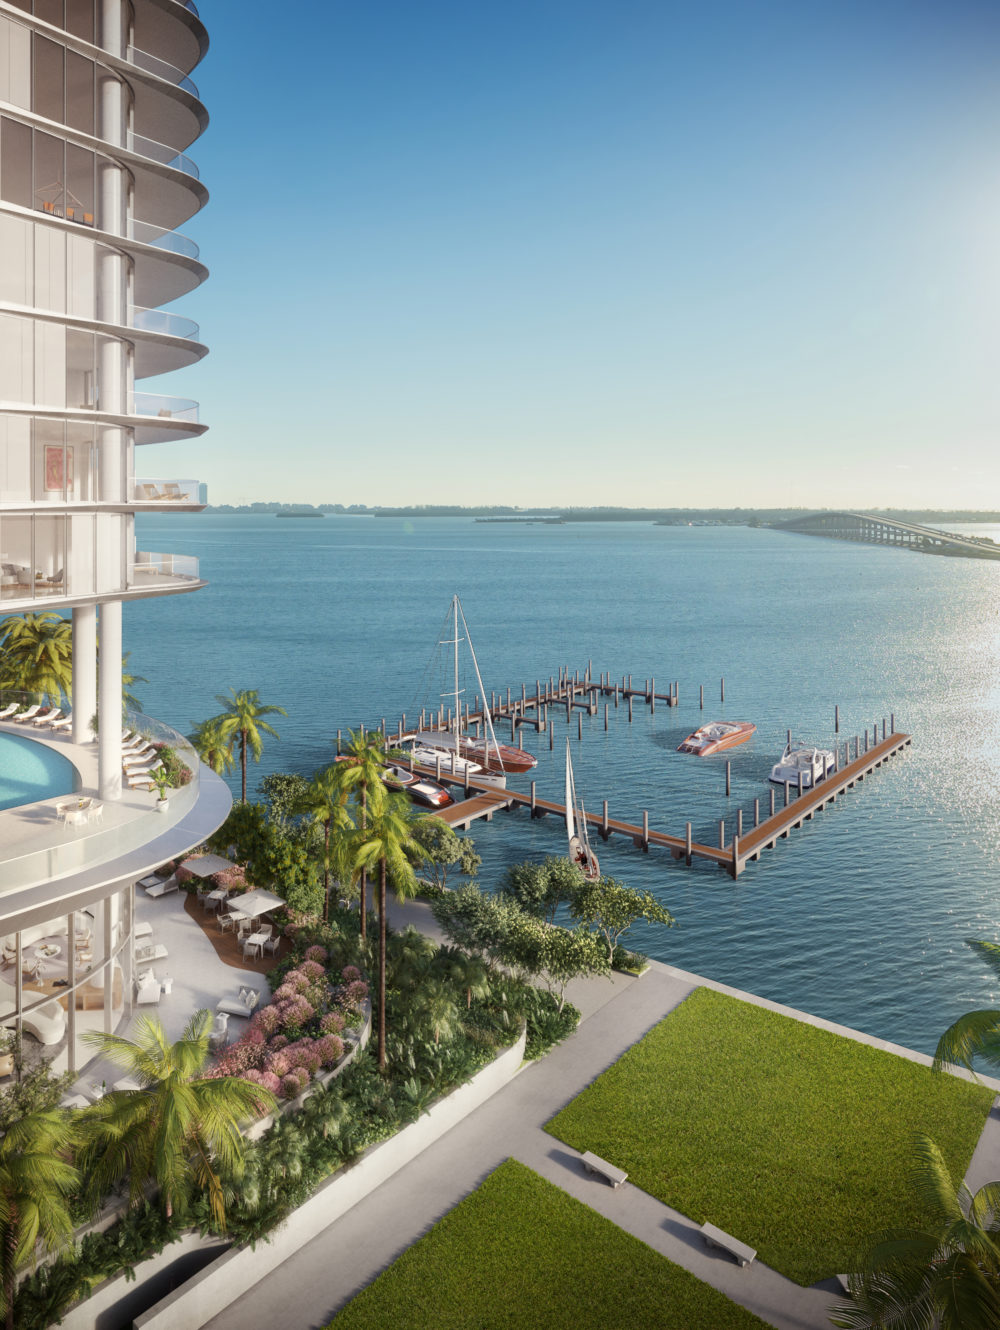 Birdseye exterior view of Una Residences luxury condominiums second floor pool and the marina in Miami's Biscayne Bay.